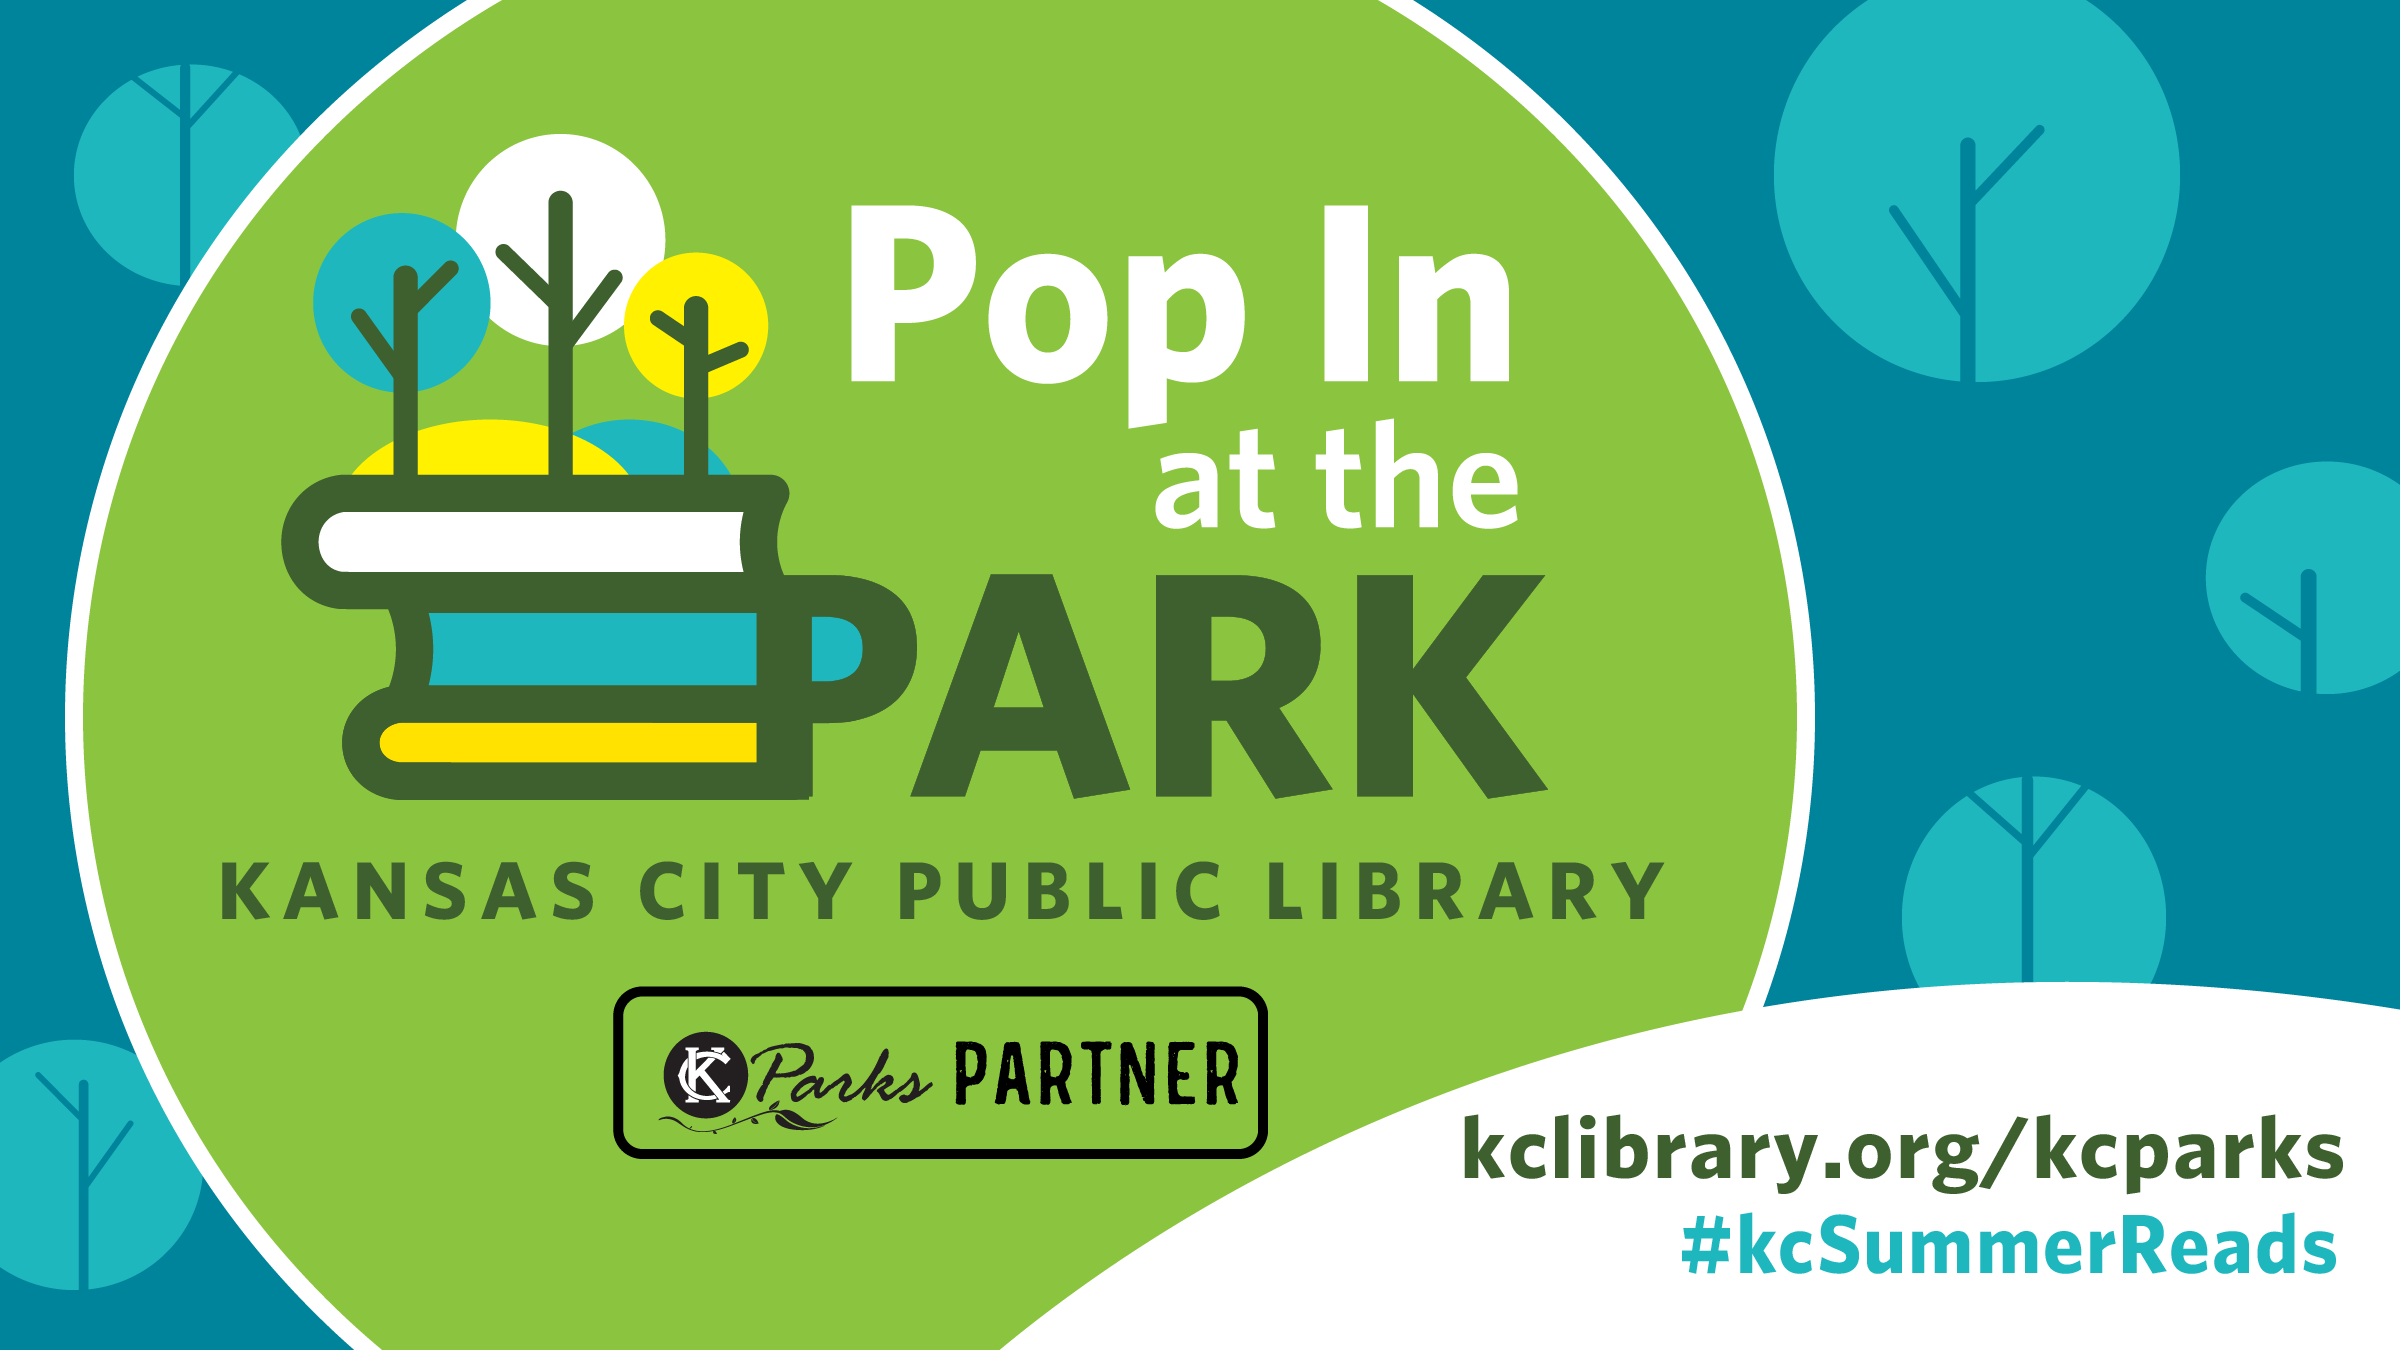 Kansas City Public Library Brings Summer Reading to City Parks